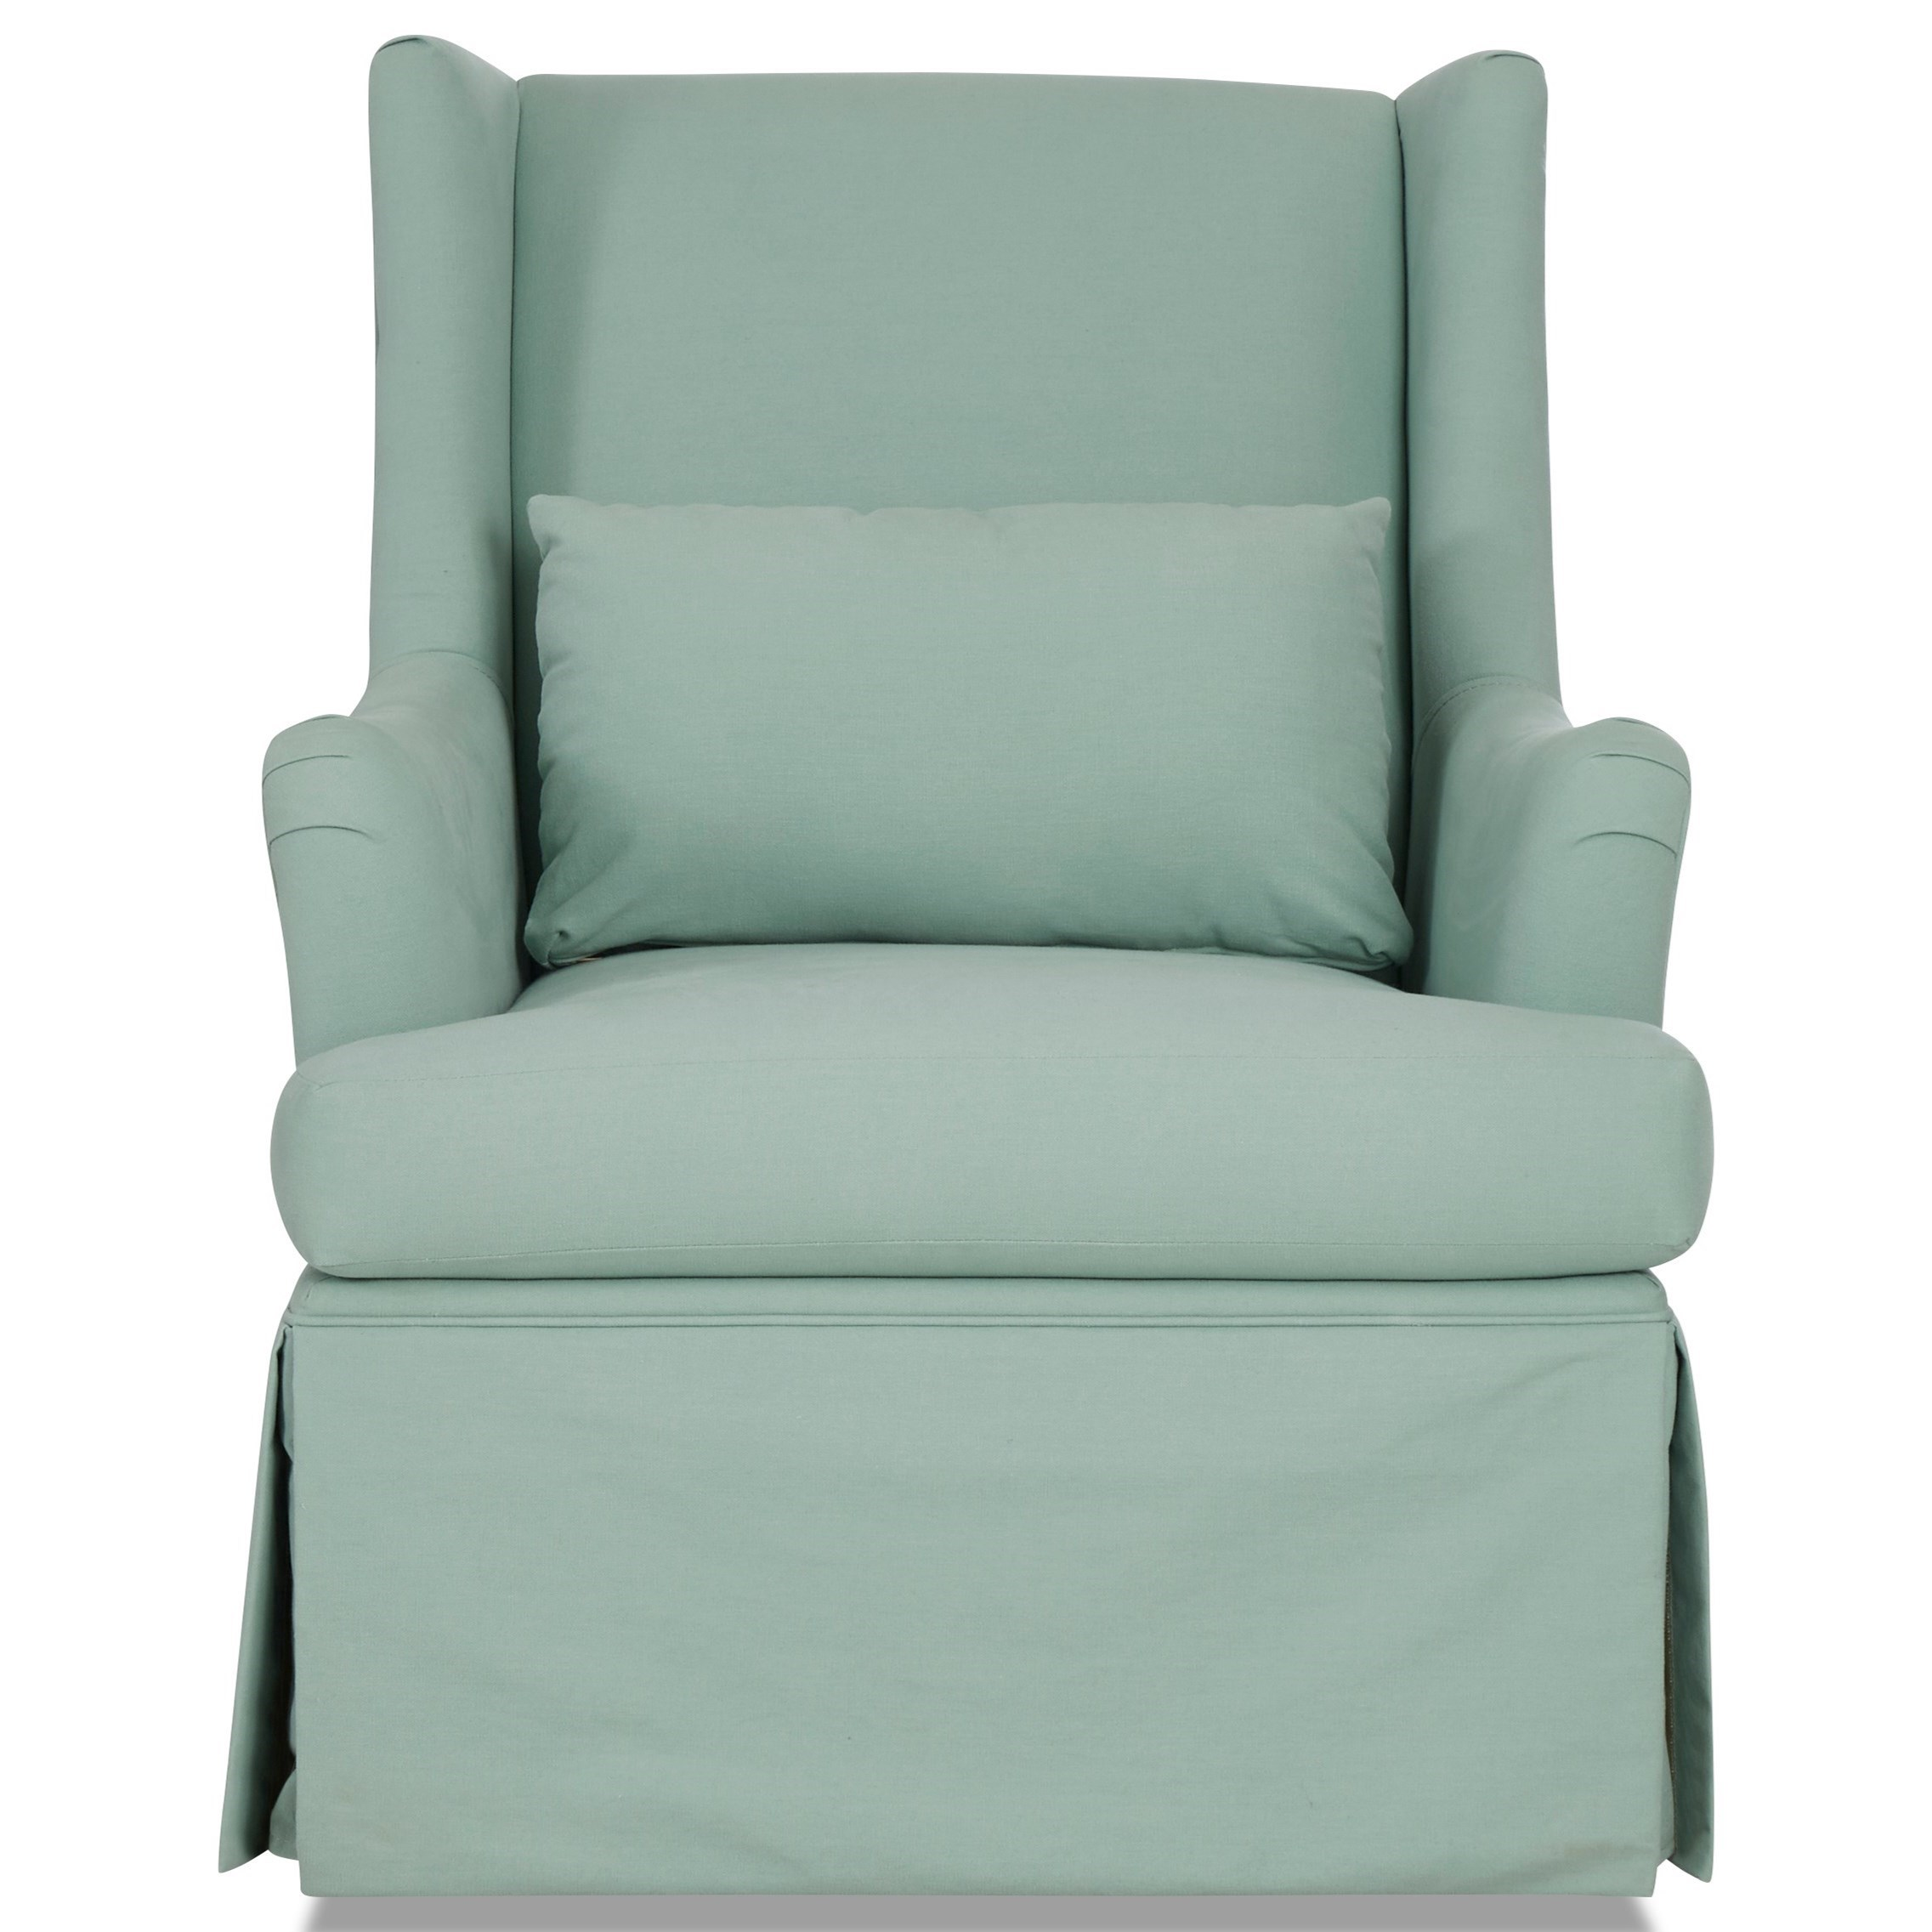 Birdie Occasional Chair by Klaussner at Northeast Factory Direct